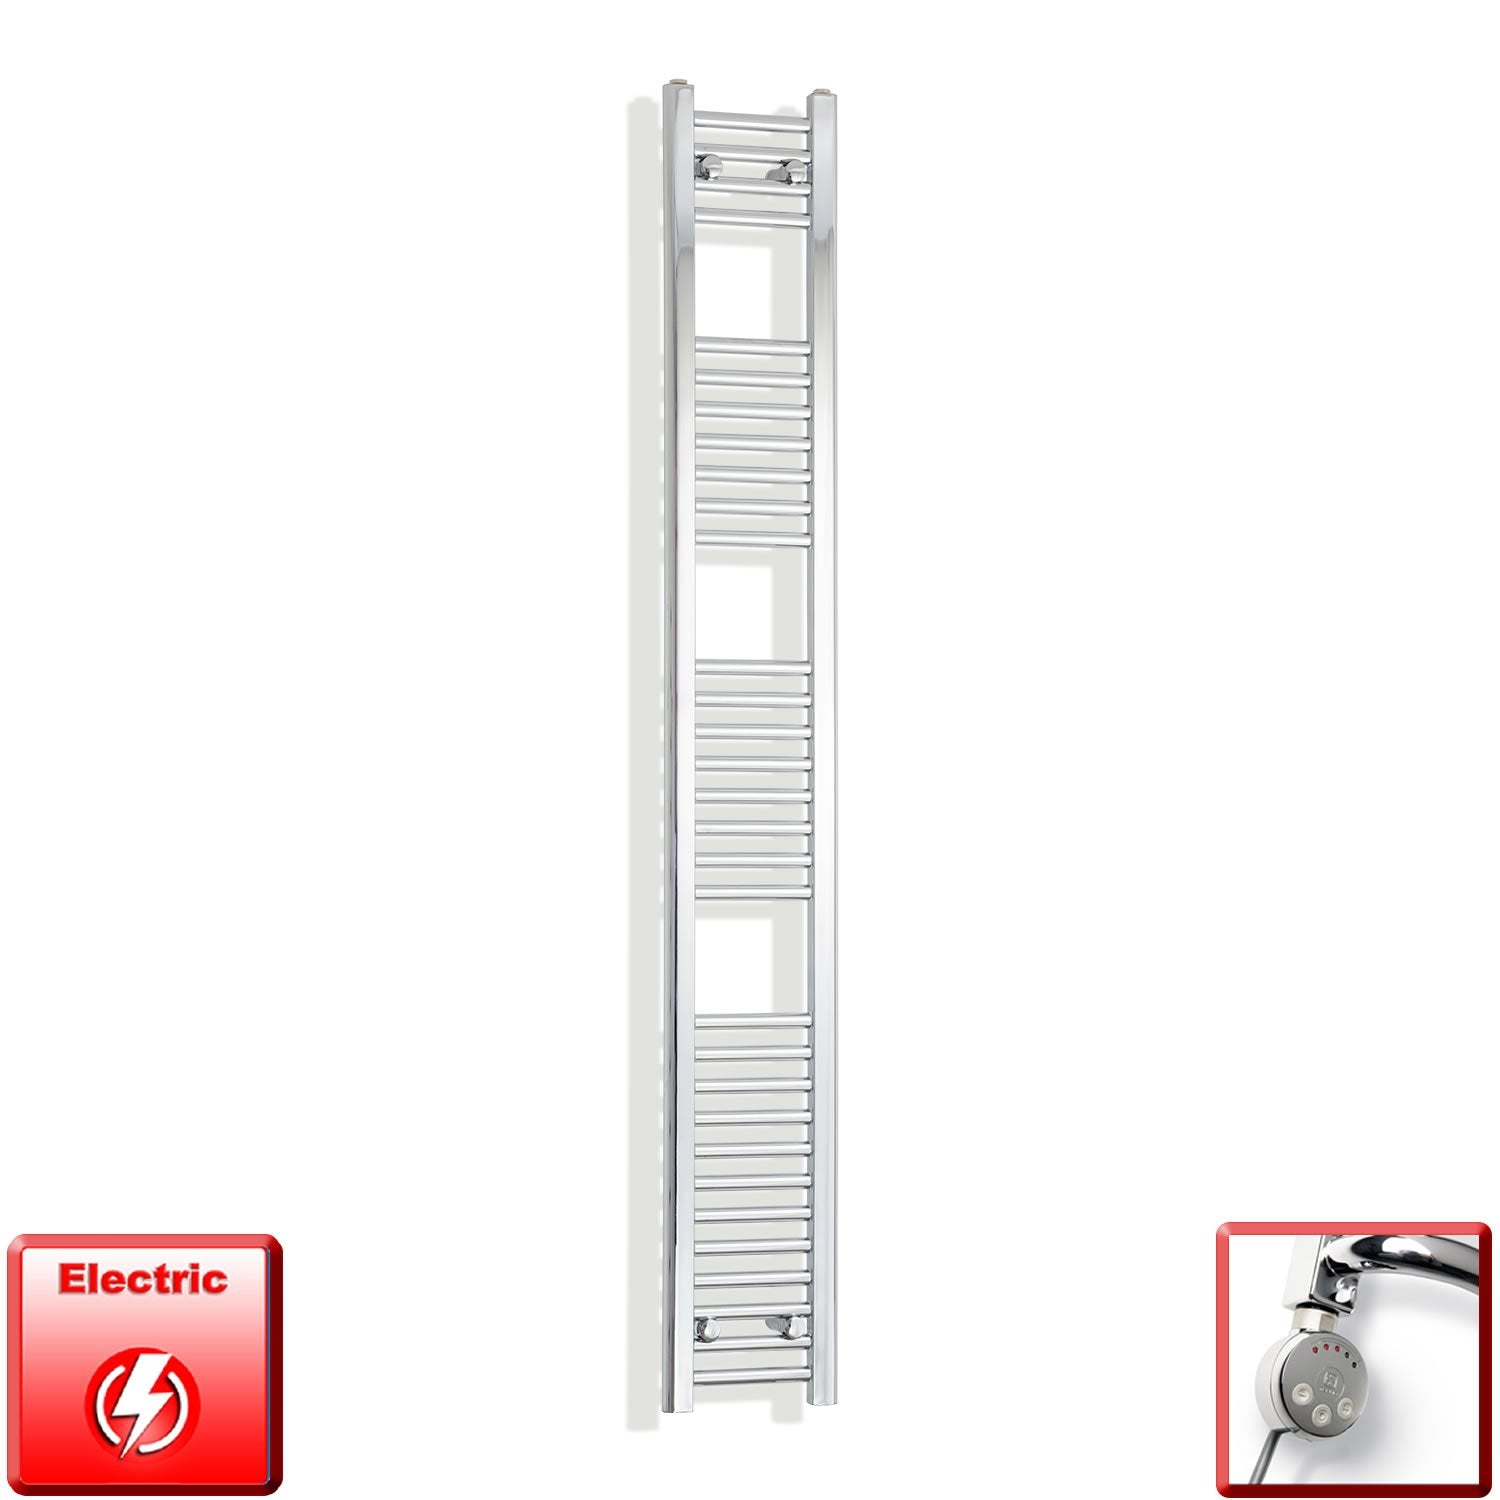 200mm Wide 1800mm High Flat Chrome Pre-Filled Electric Heated Towel Rail Radiator HTR,MEG Thermostatic Element